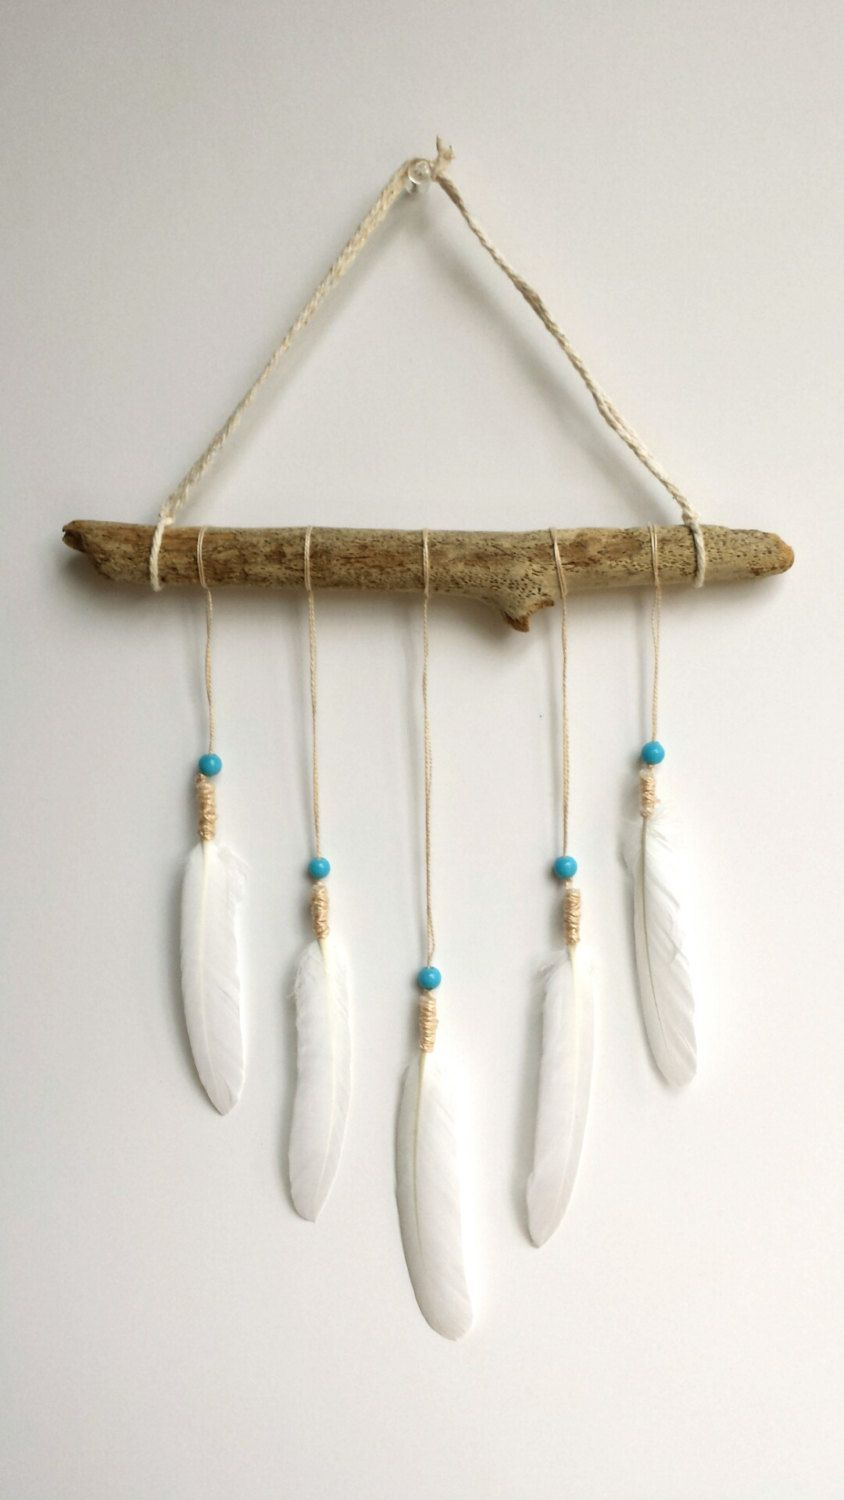 Native American Home Decor Freebird Feather Wall Hanging Light Airy Driftwood Native American